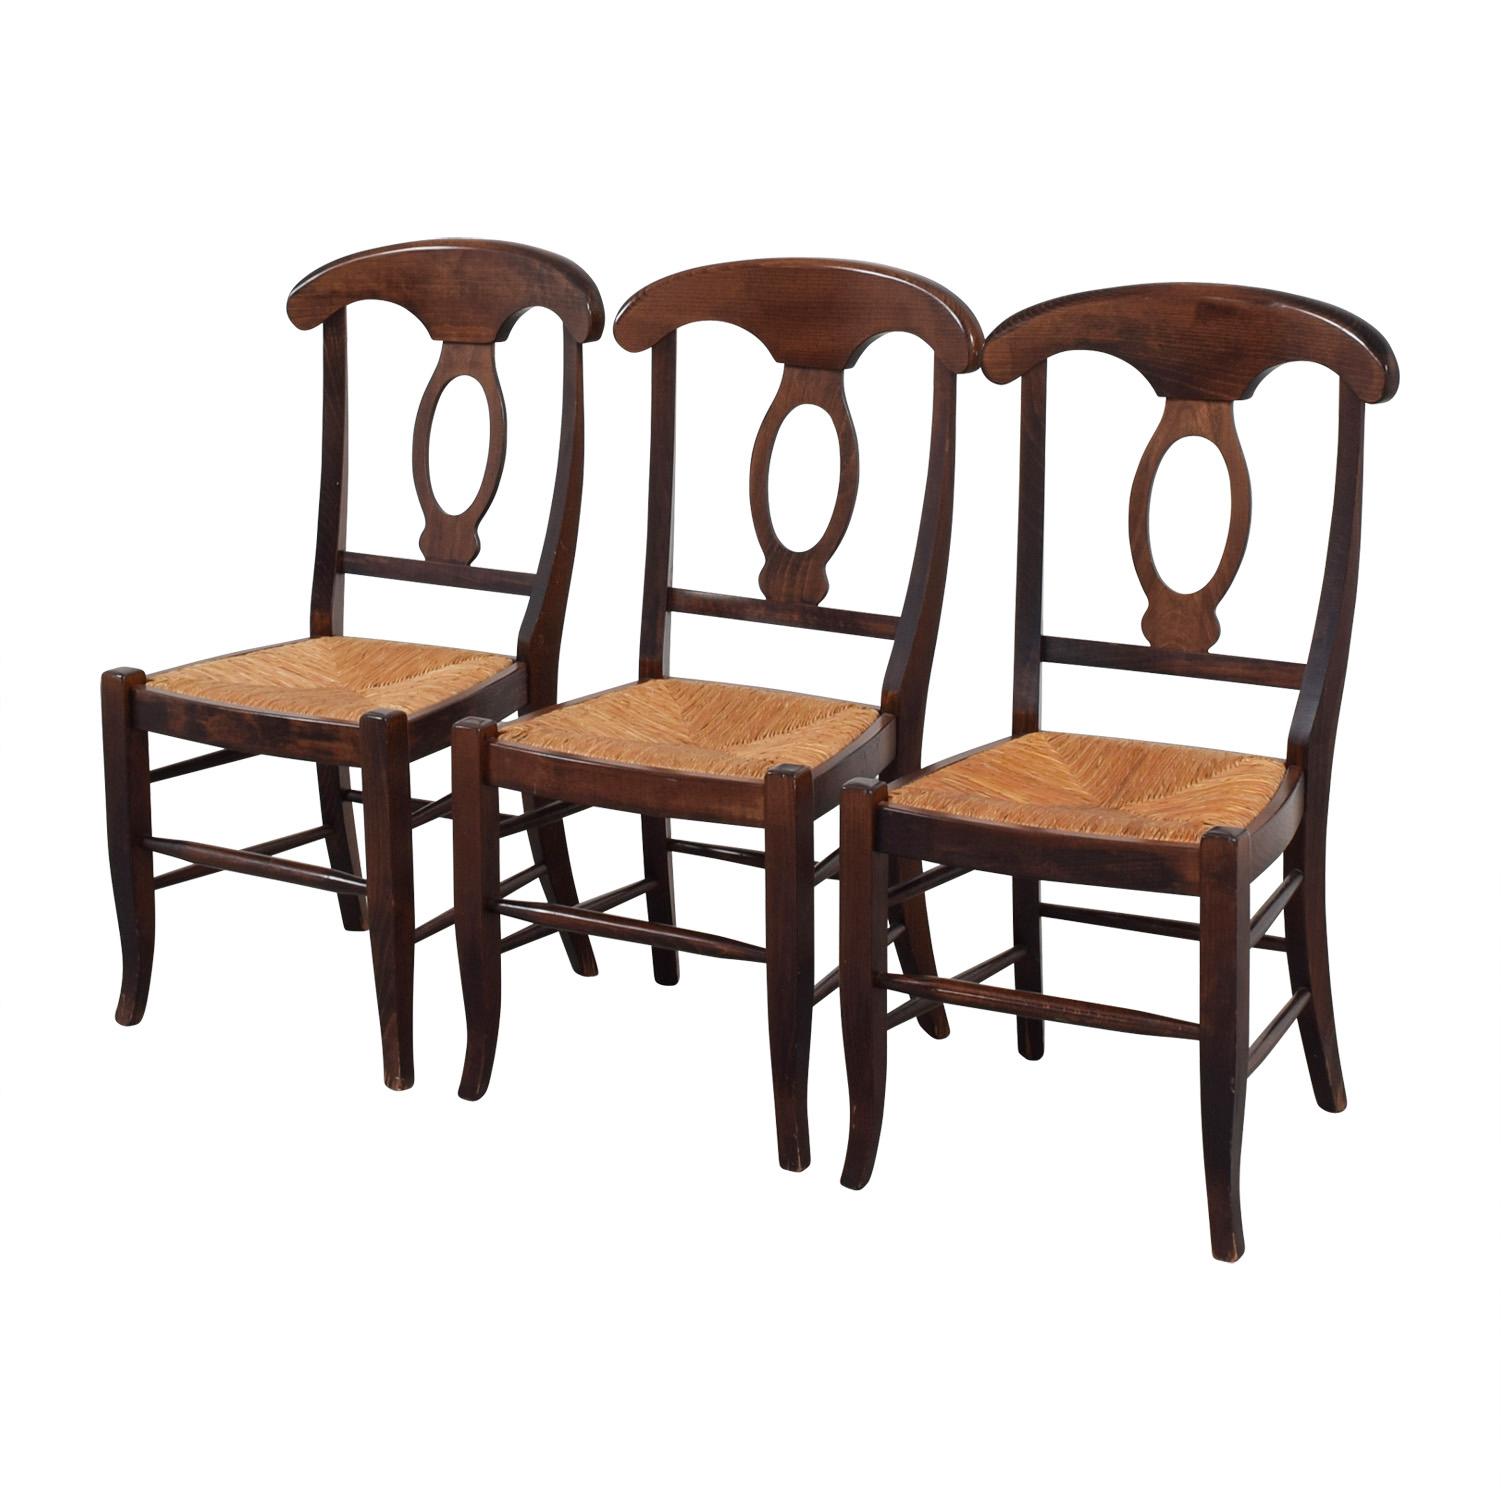 ... Shop Pottery Barn Pottery Barn Napoleon Chairs Online ...